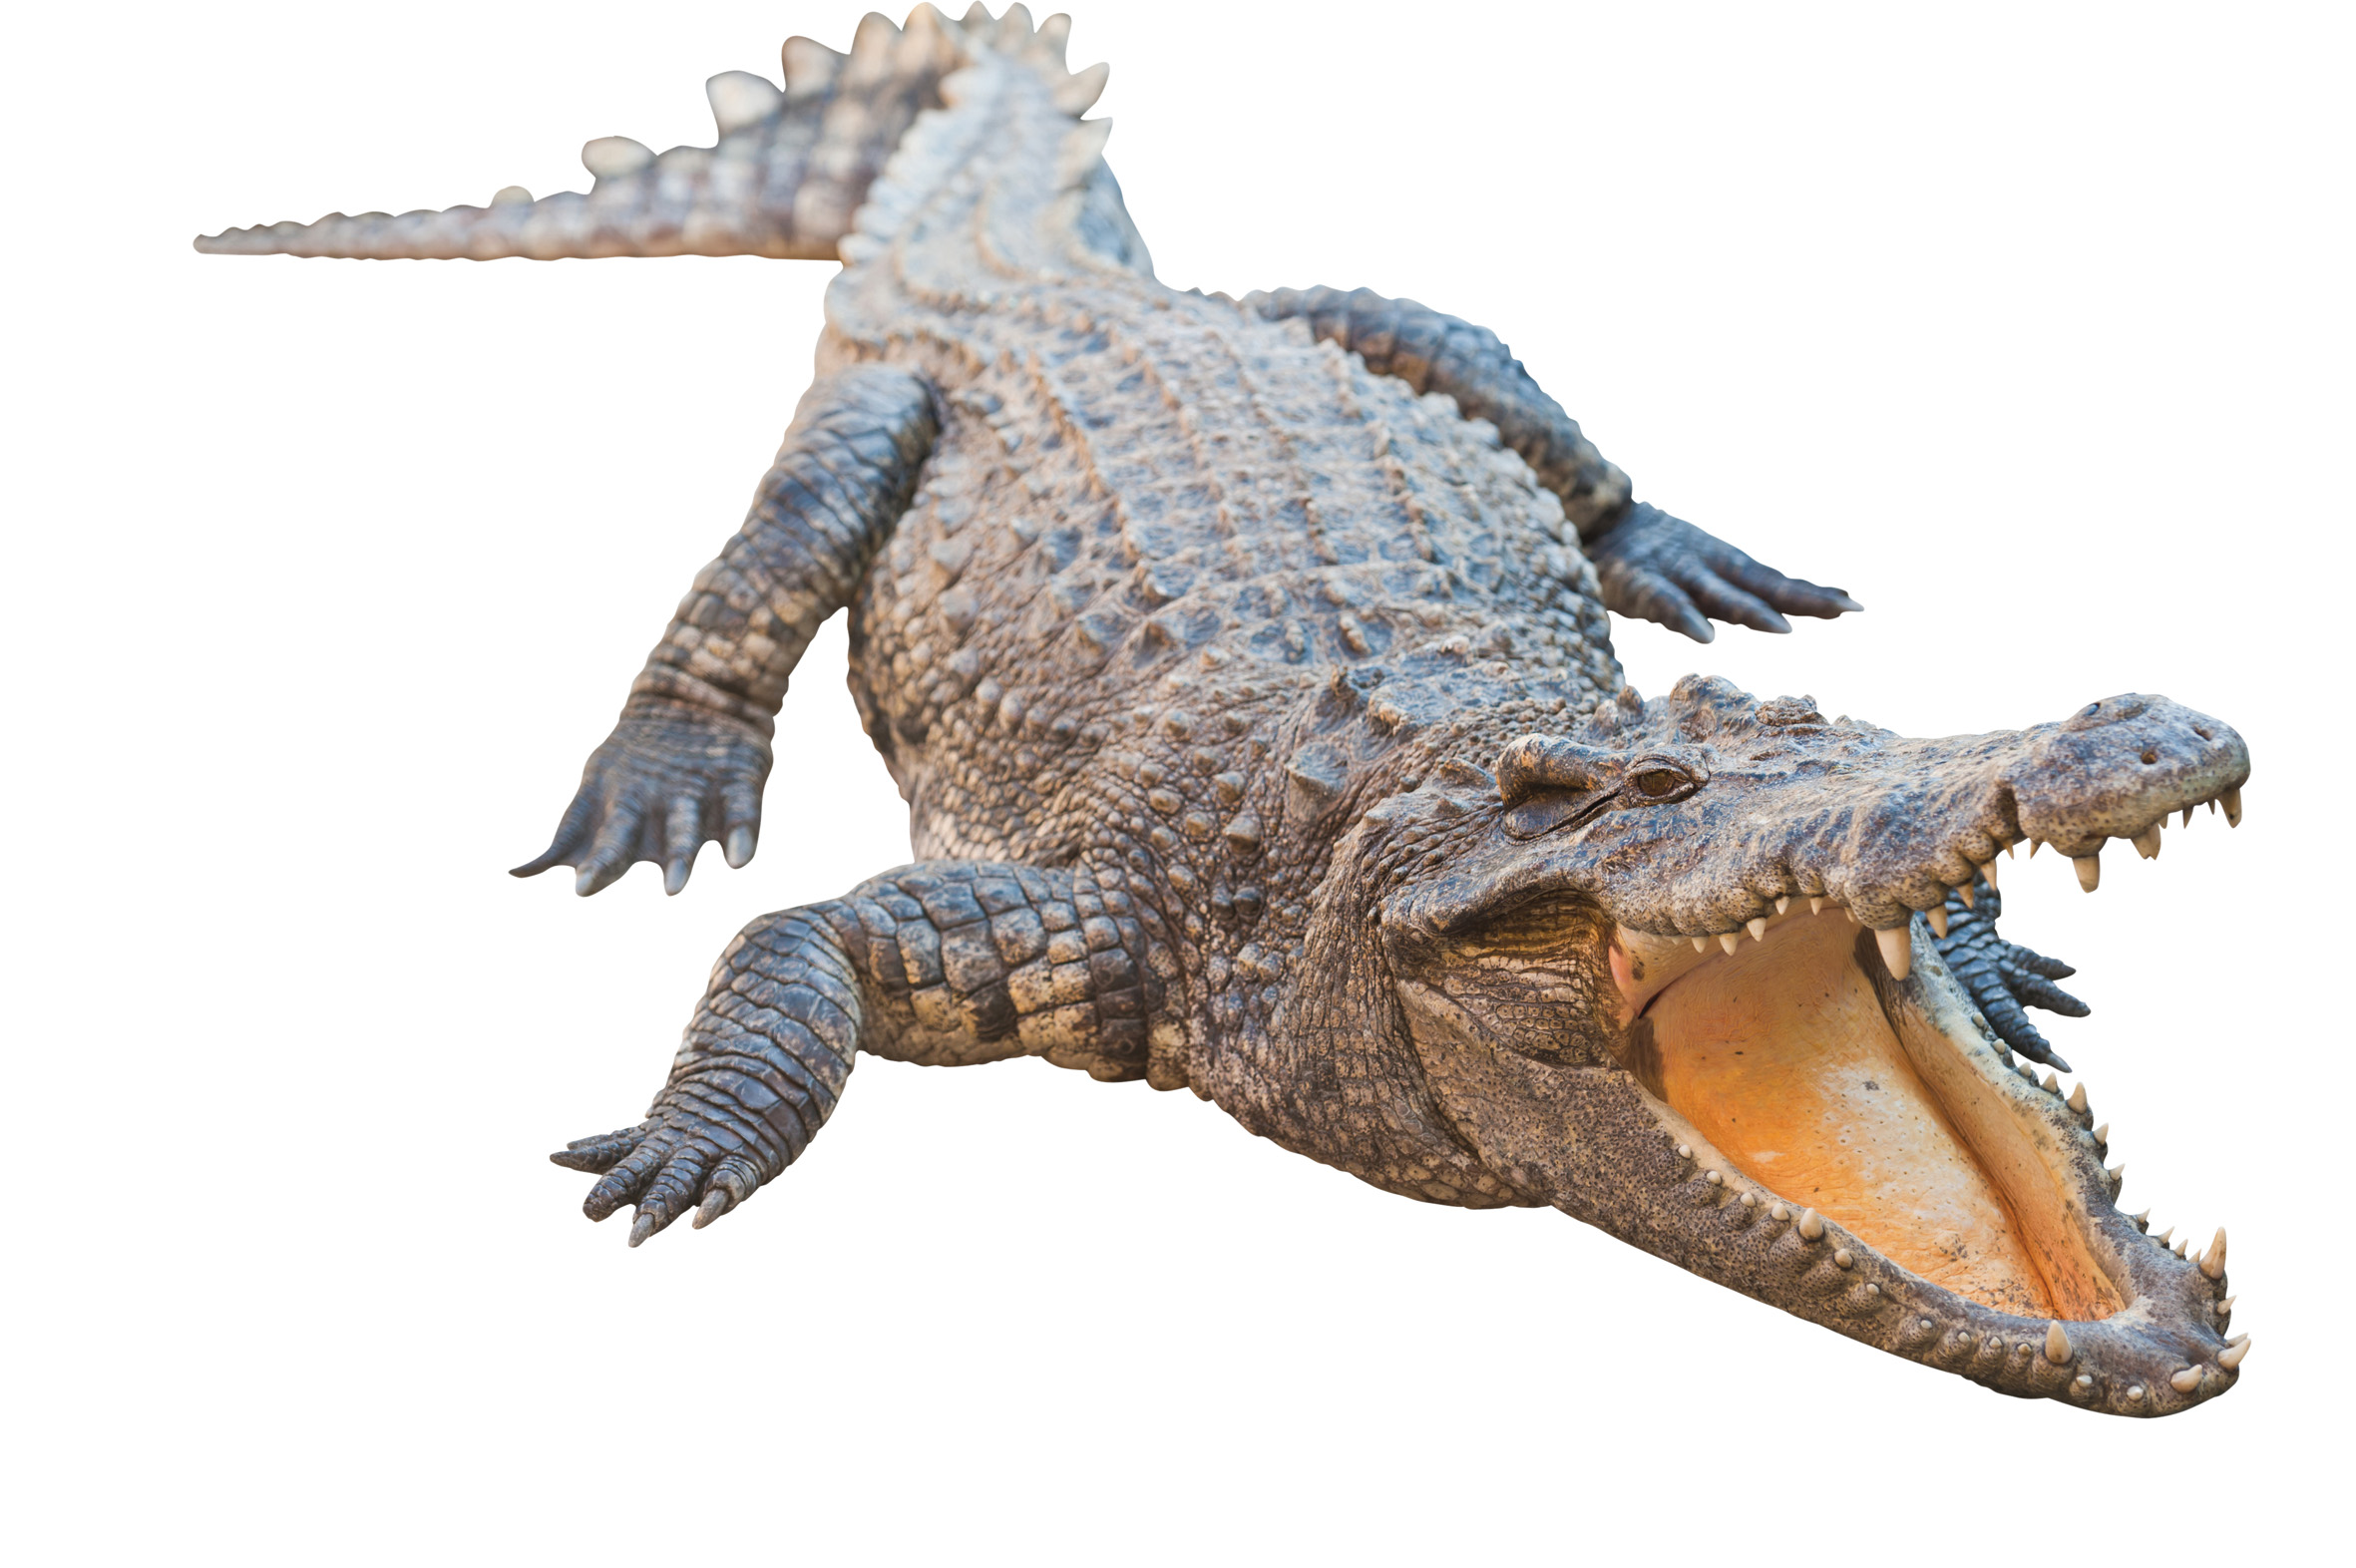 Advertisements - Crocodile PNG HD Images